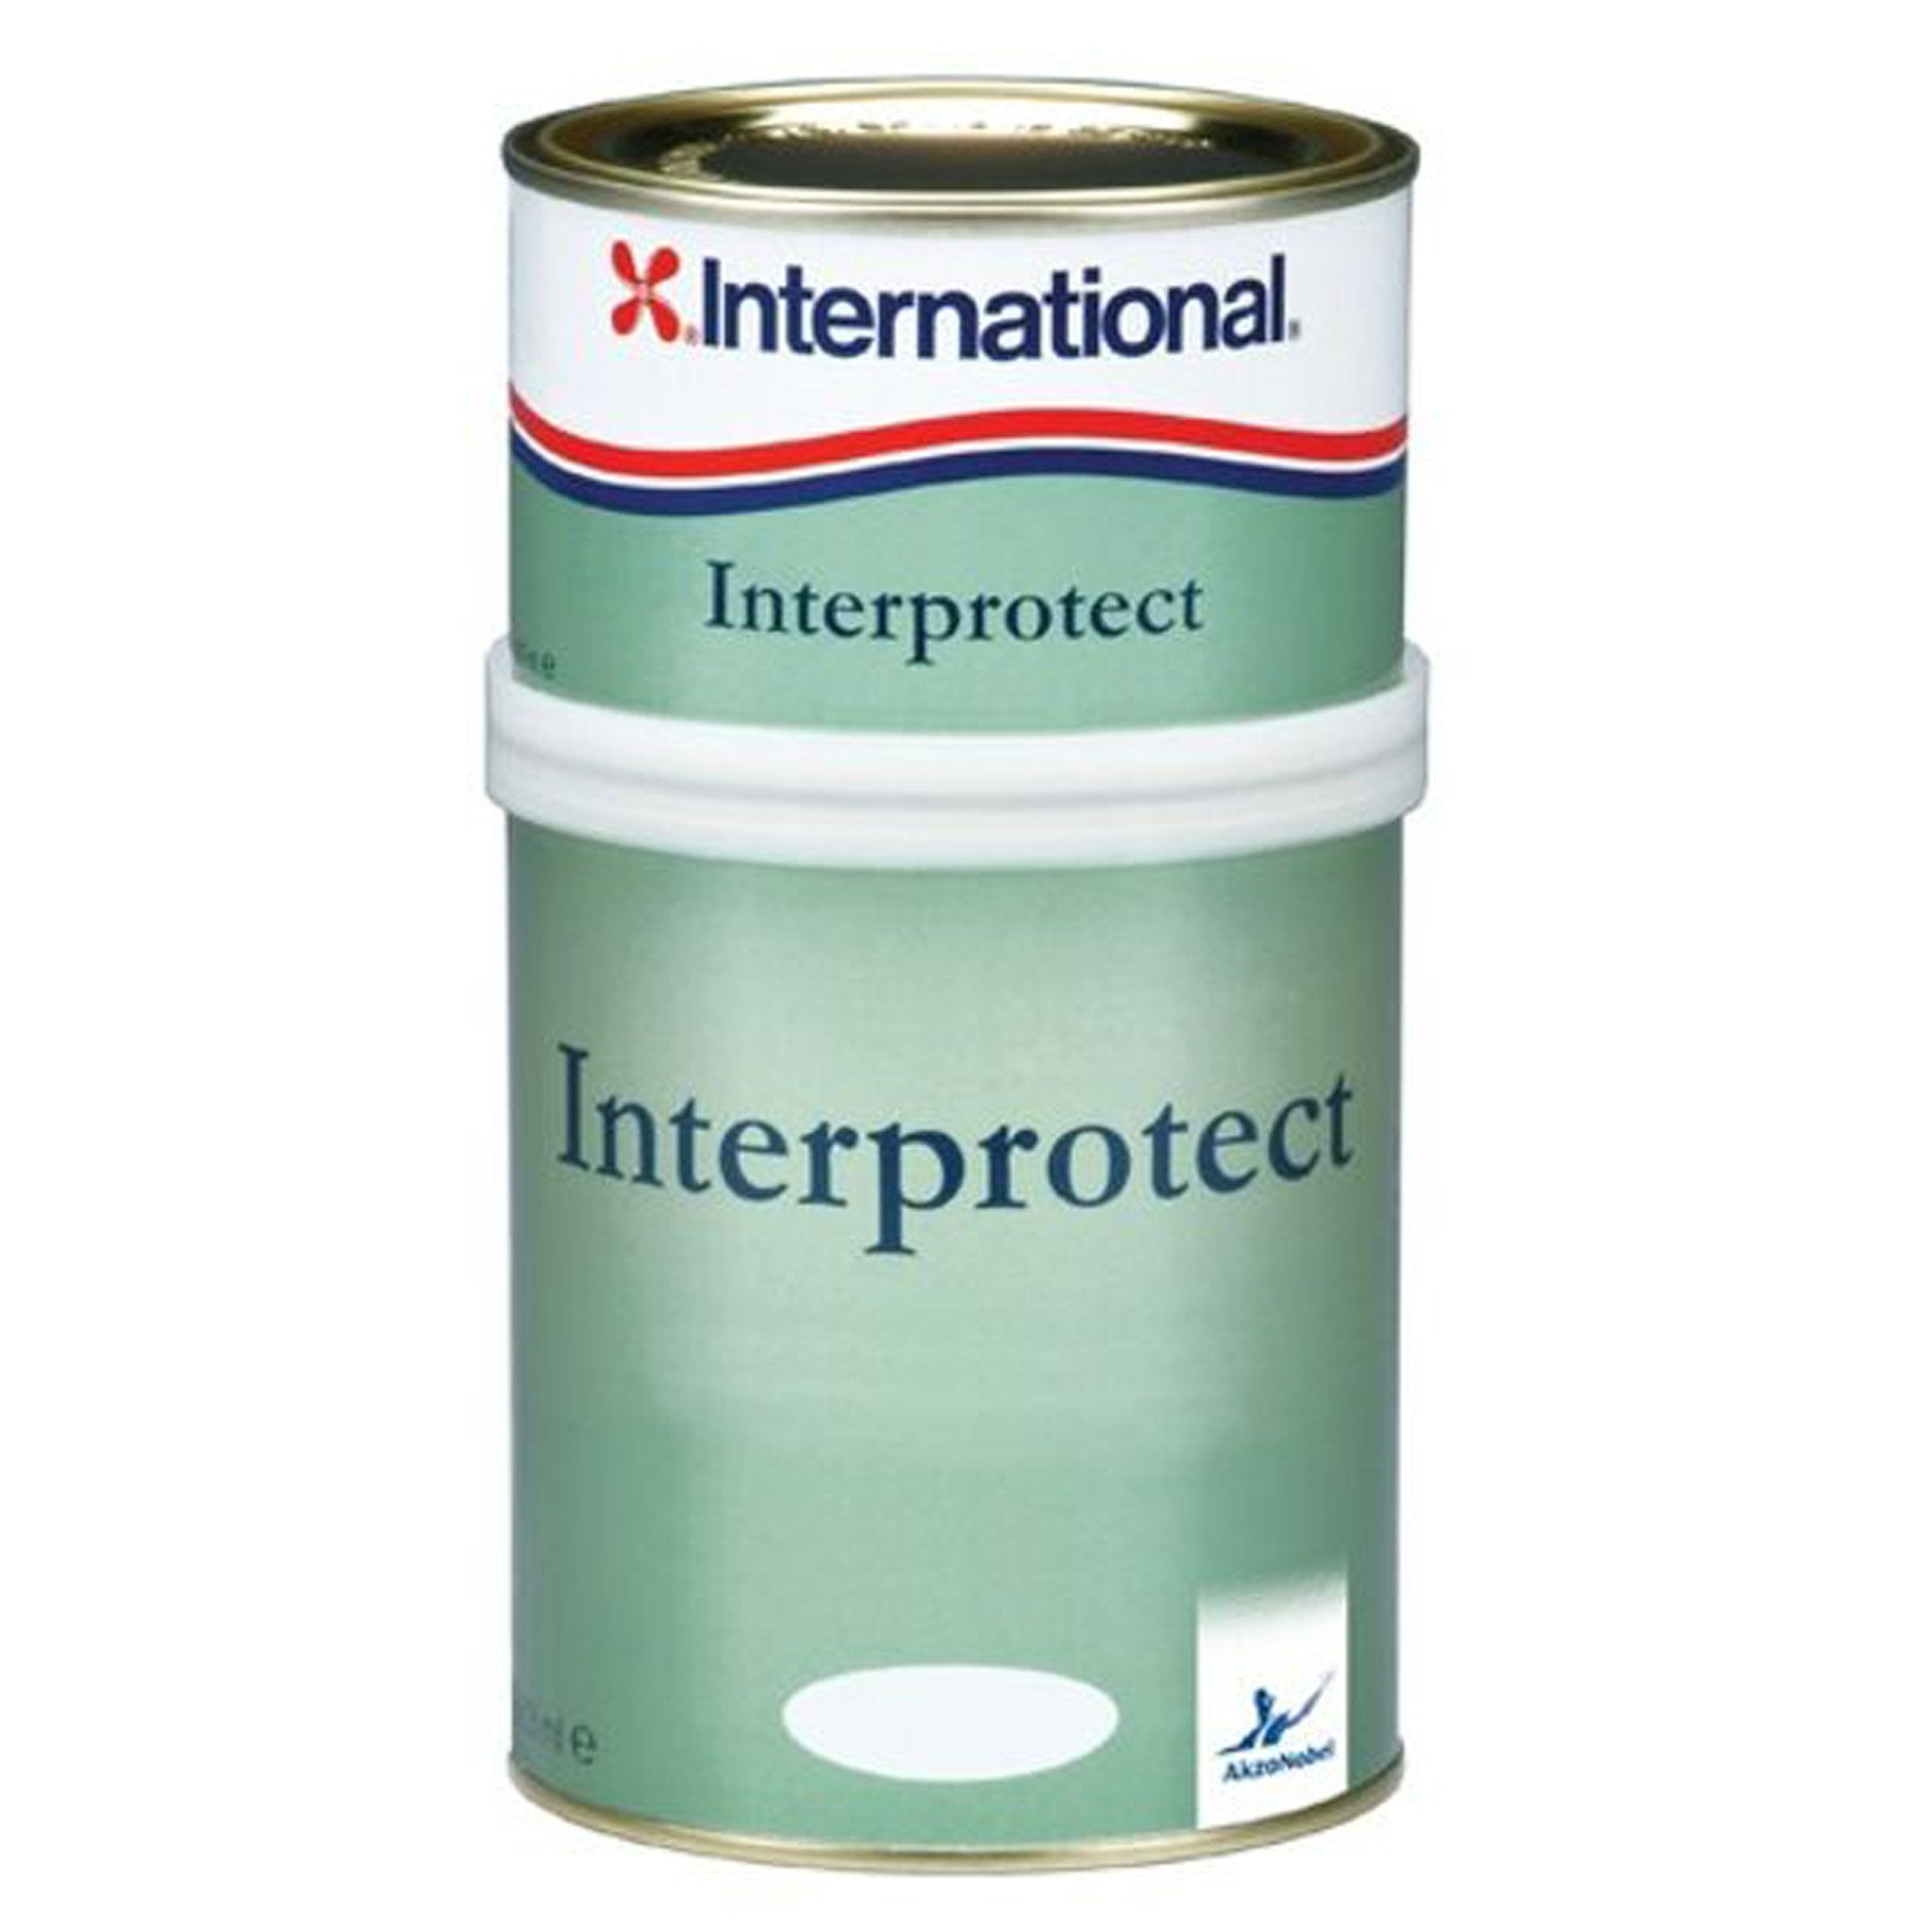 International Interprotect White - Arthur Beale